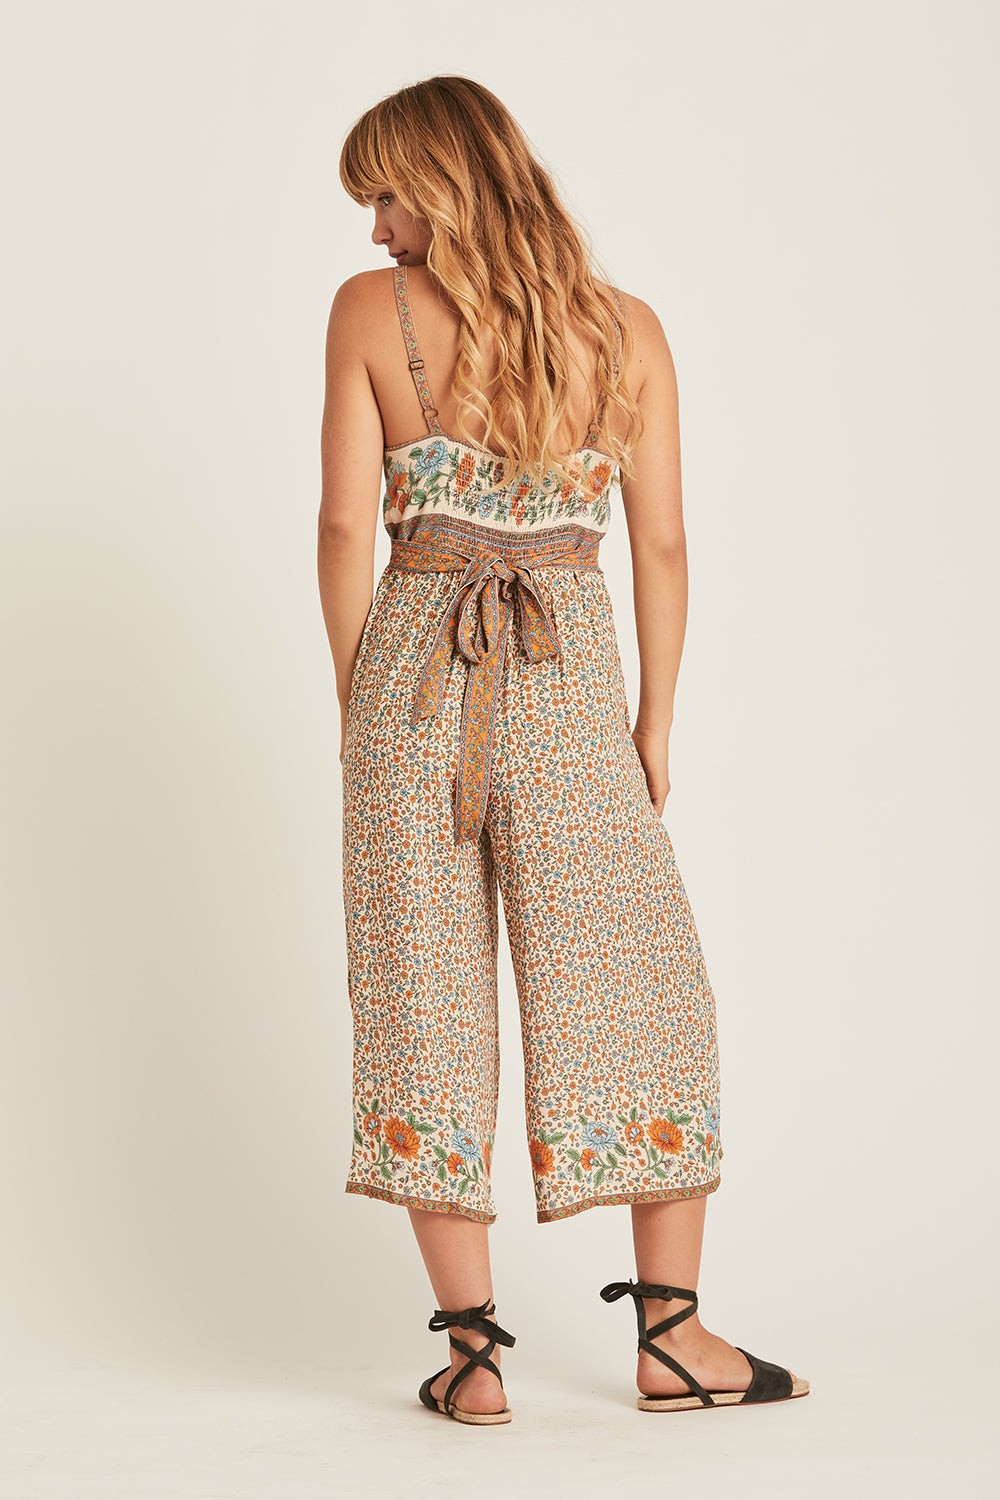 Ophelia Jumpsuit in Tango